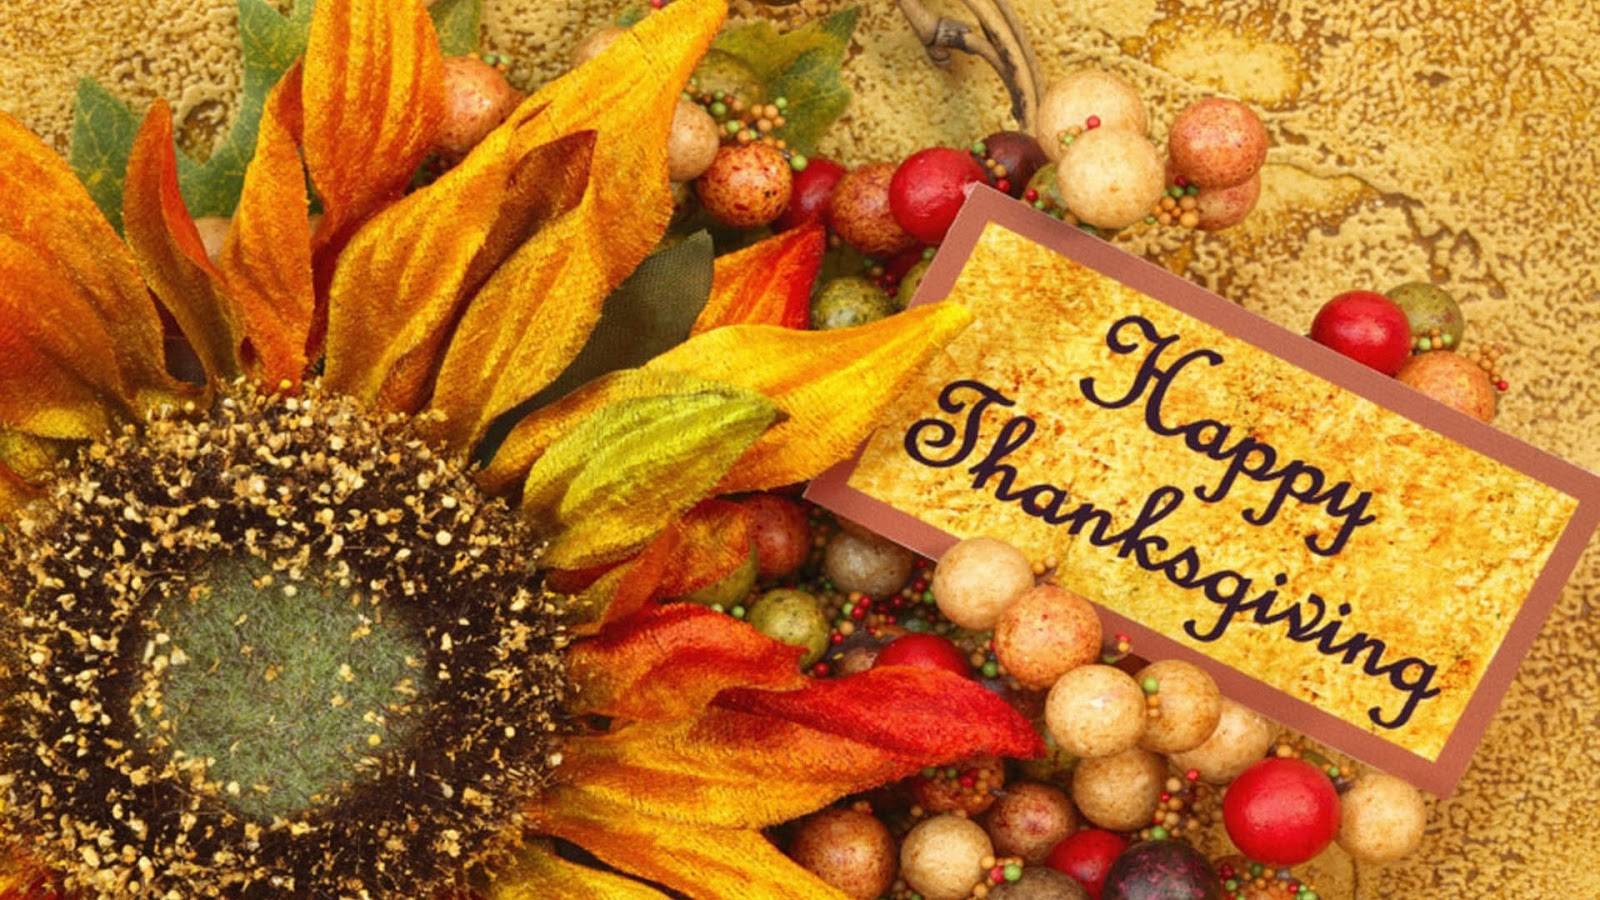 Unique and best 30 wishing quotes wishing message and happy thanksgiving day 2016 image kristyandbryce Gallery